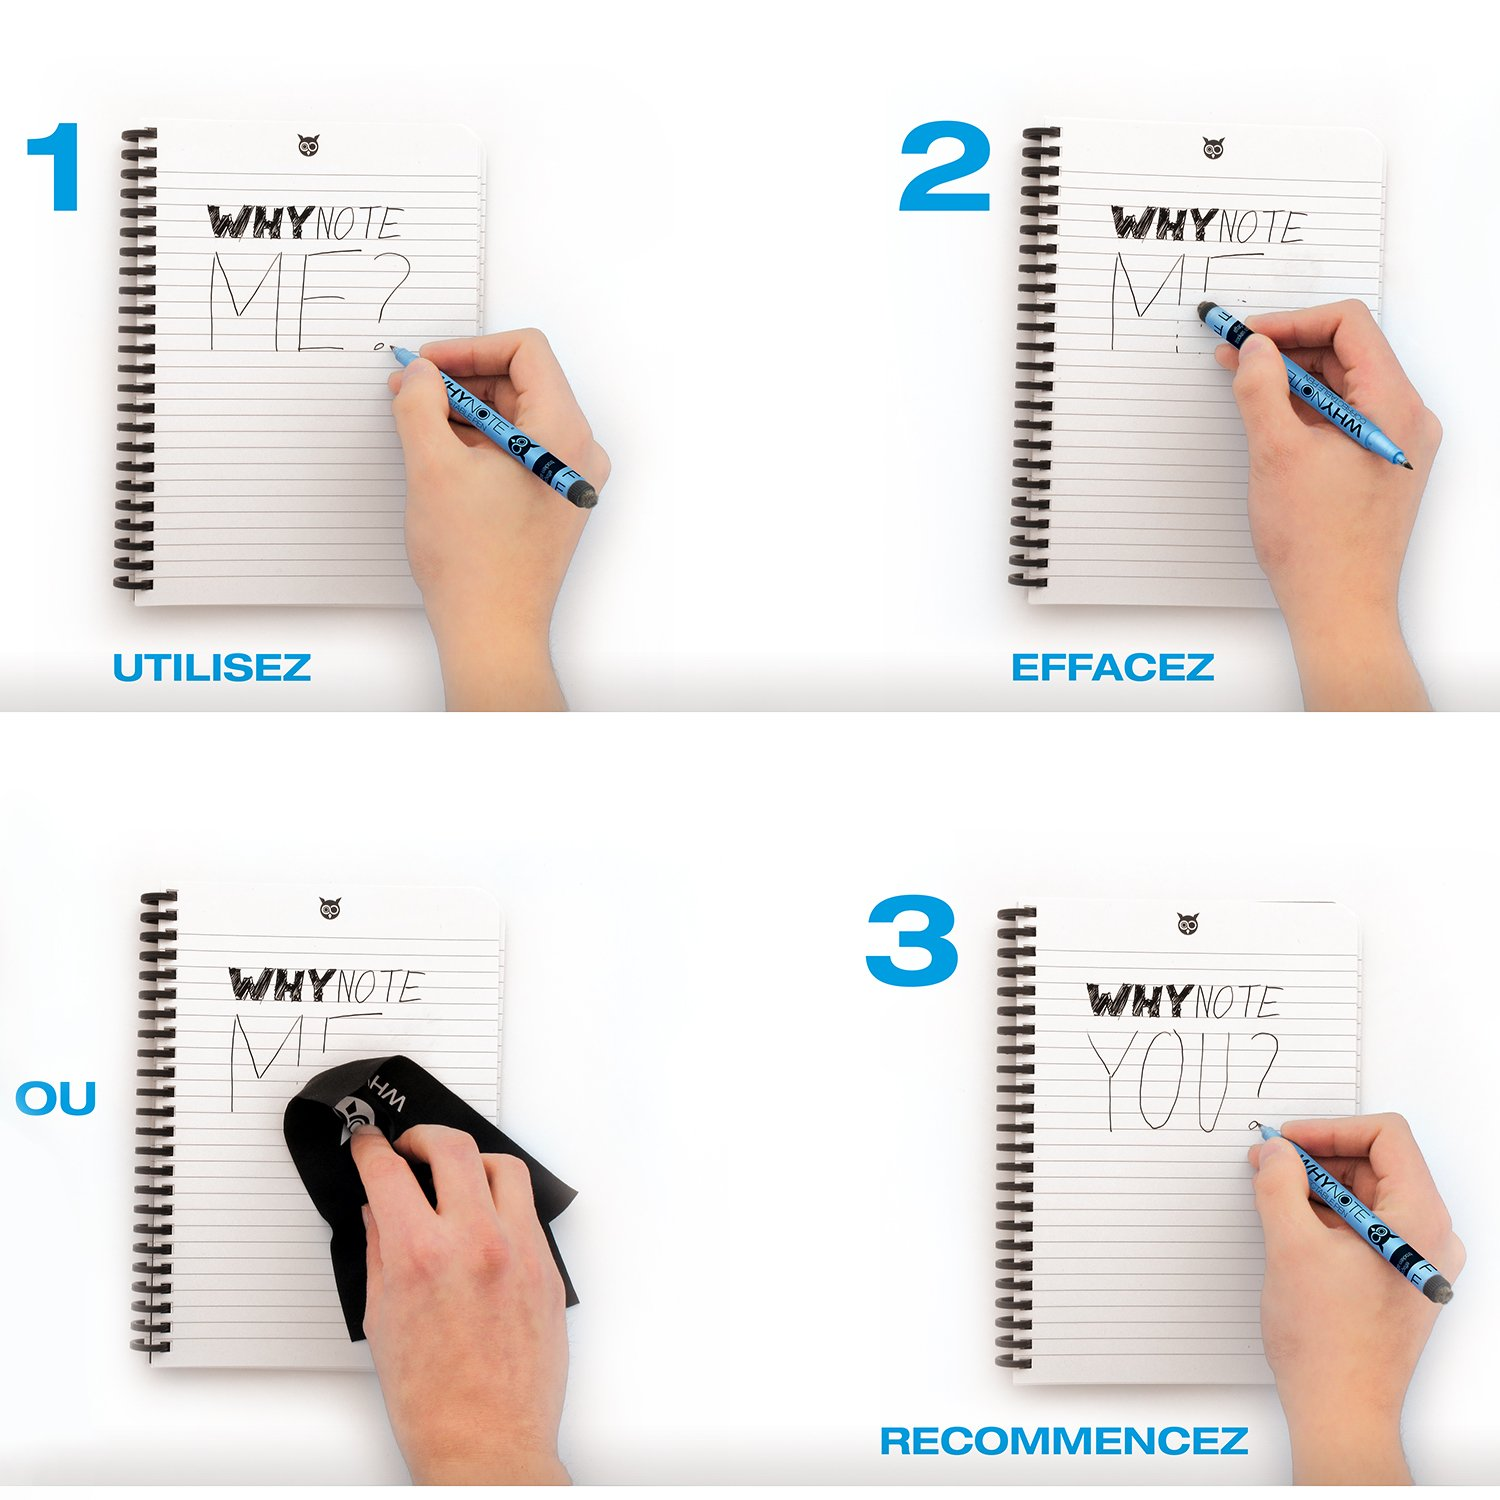 cahier whynote